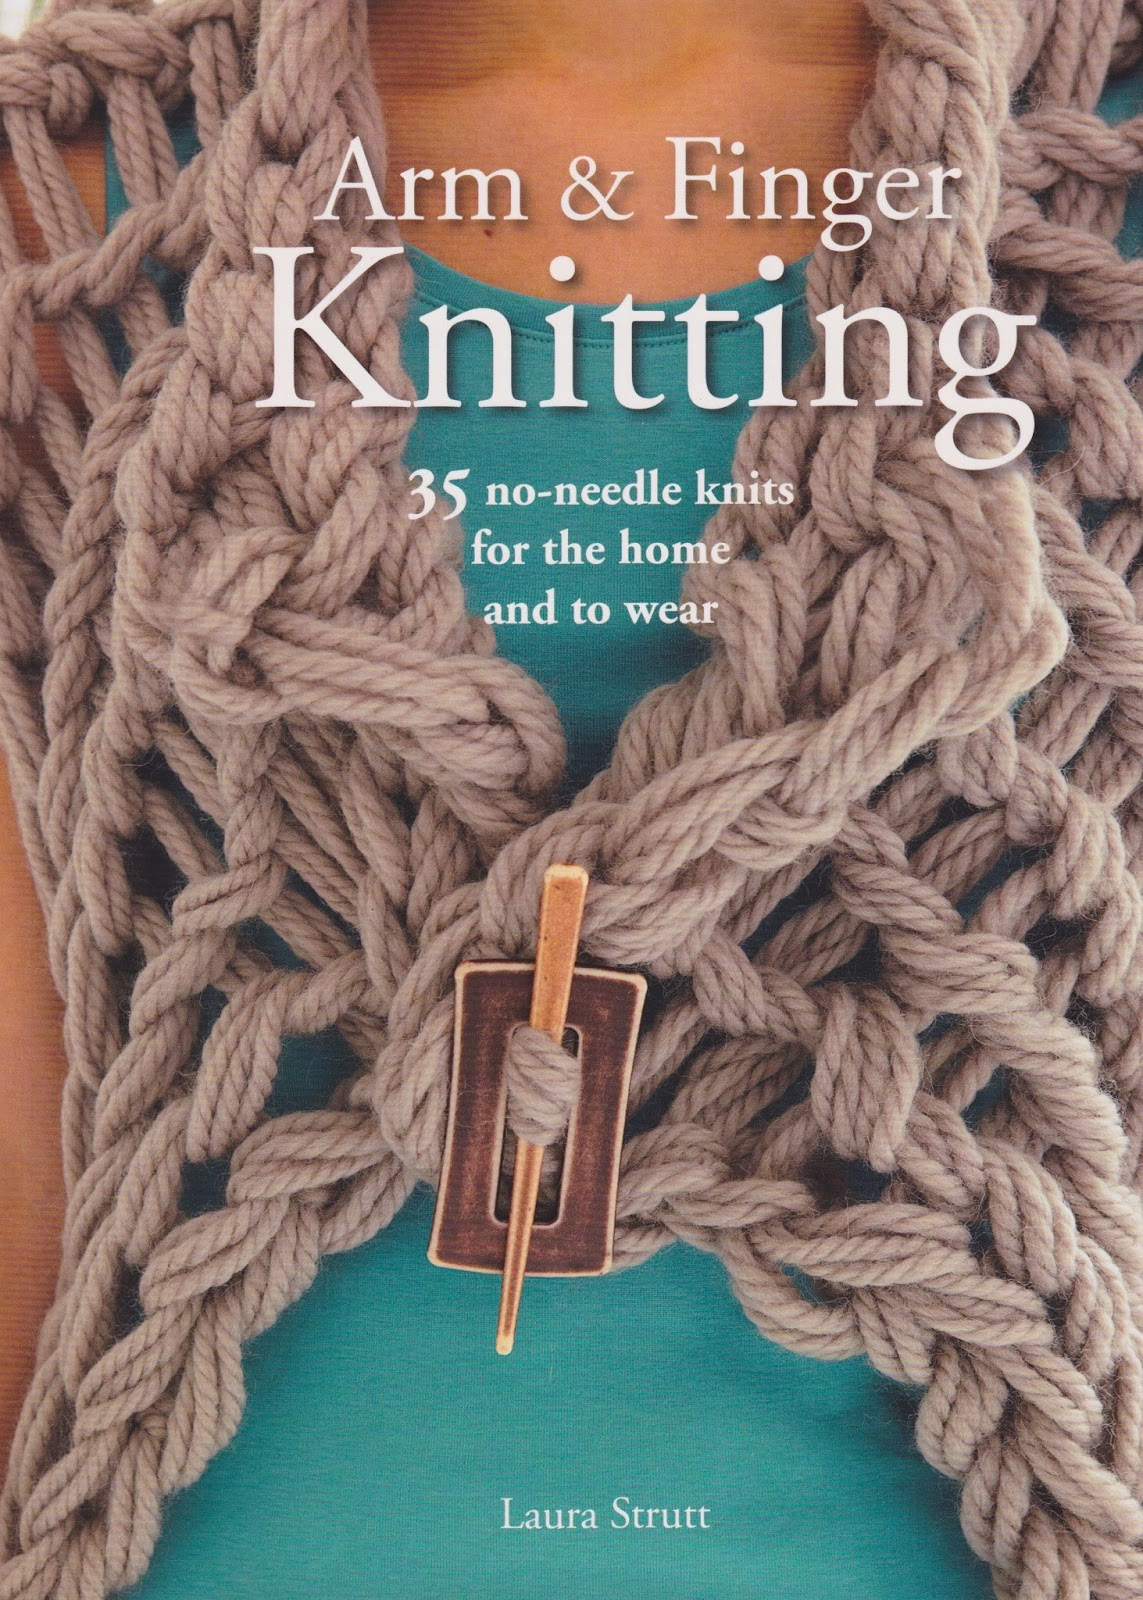 Hand Knitting With Arms : Arm finger knitting book review